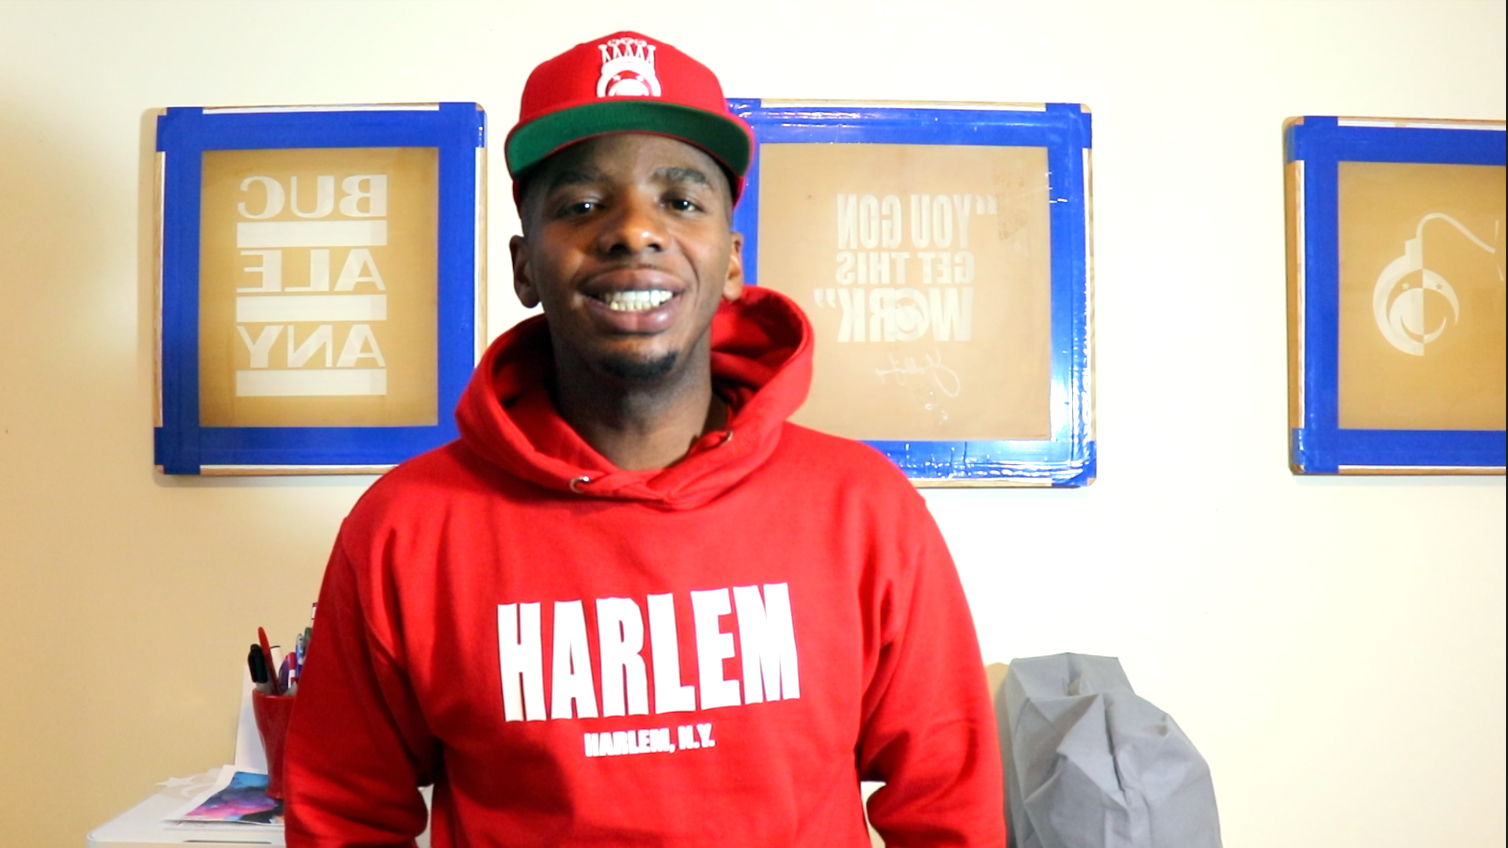 The Best HARLEM Printing Custom Service for T-shirts, Hoodies, Hats! Contact Us Now!